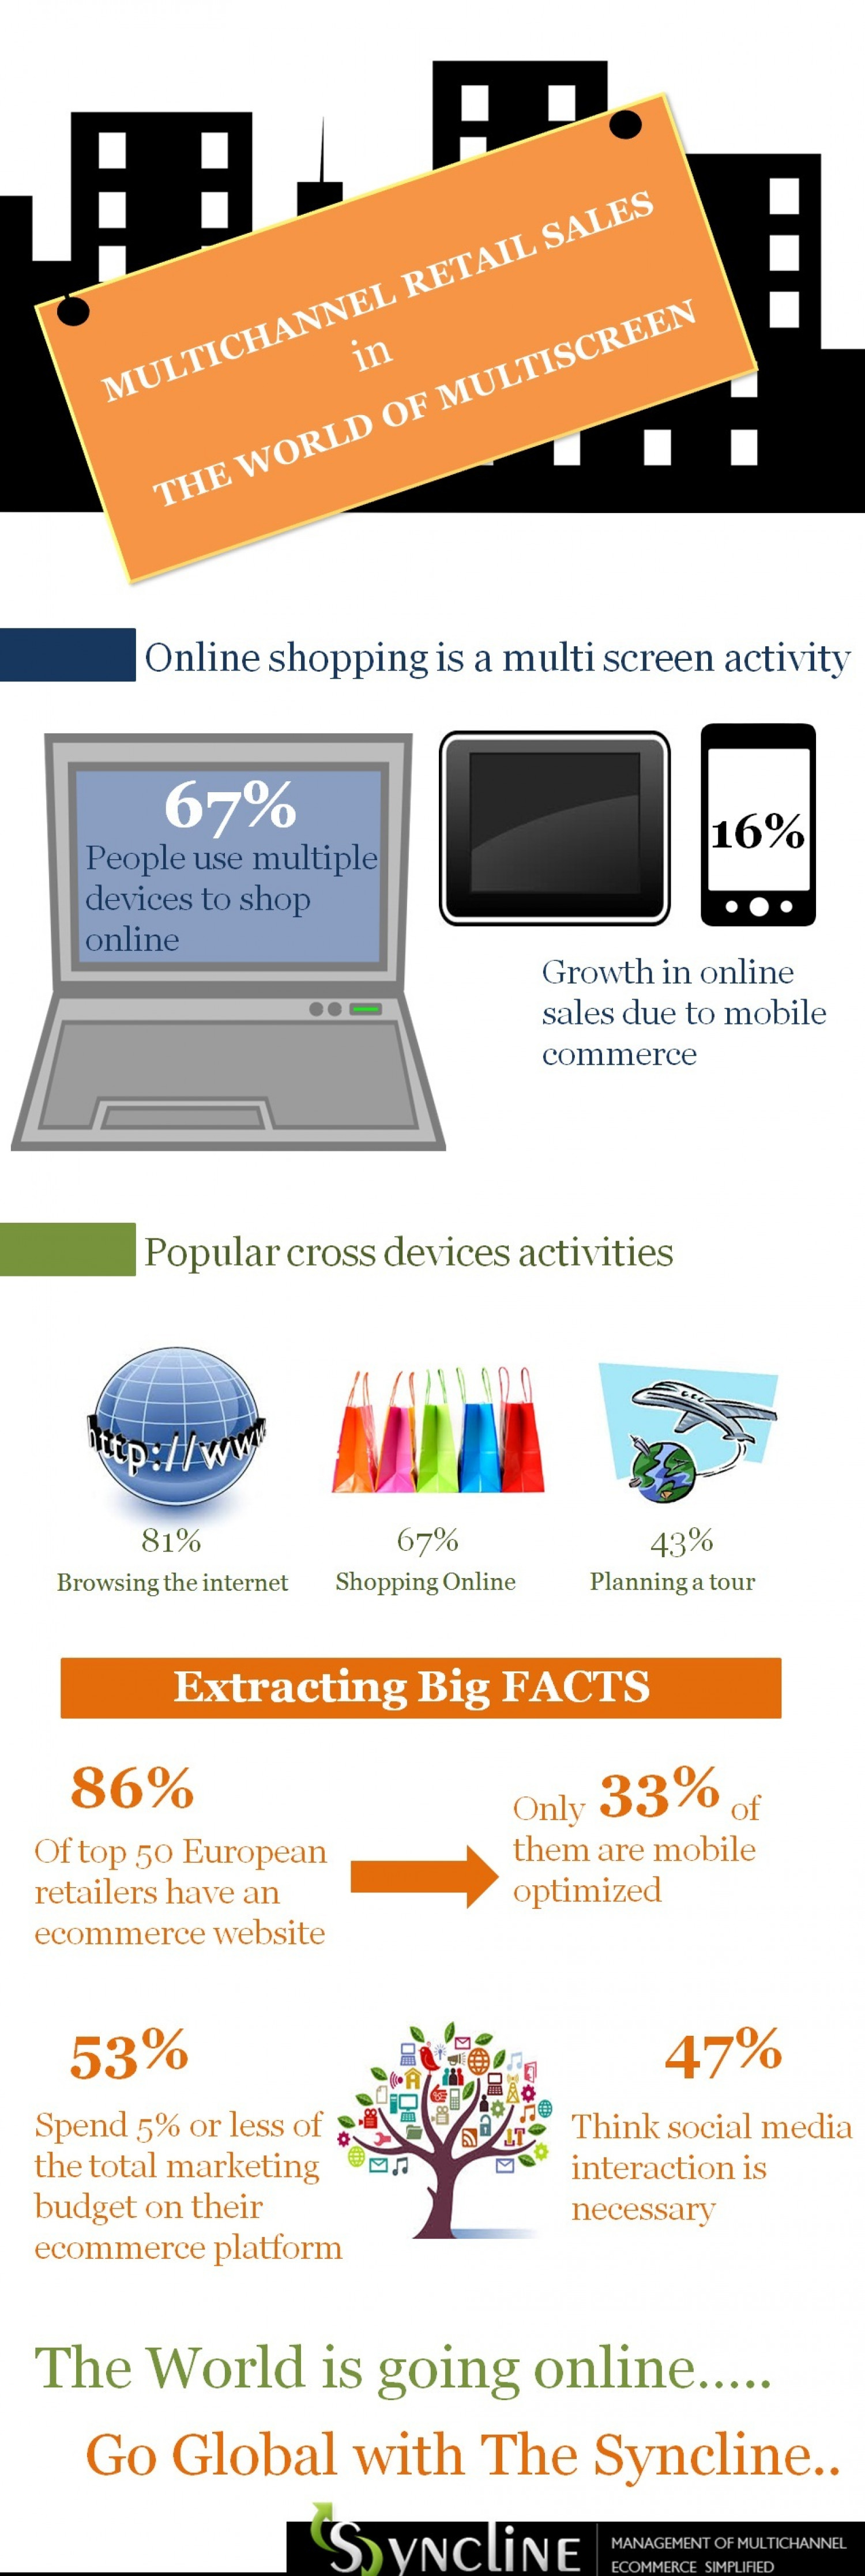 Multichannel Retail Sales in The World of Multiscreen Infographic